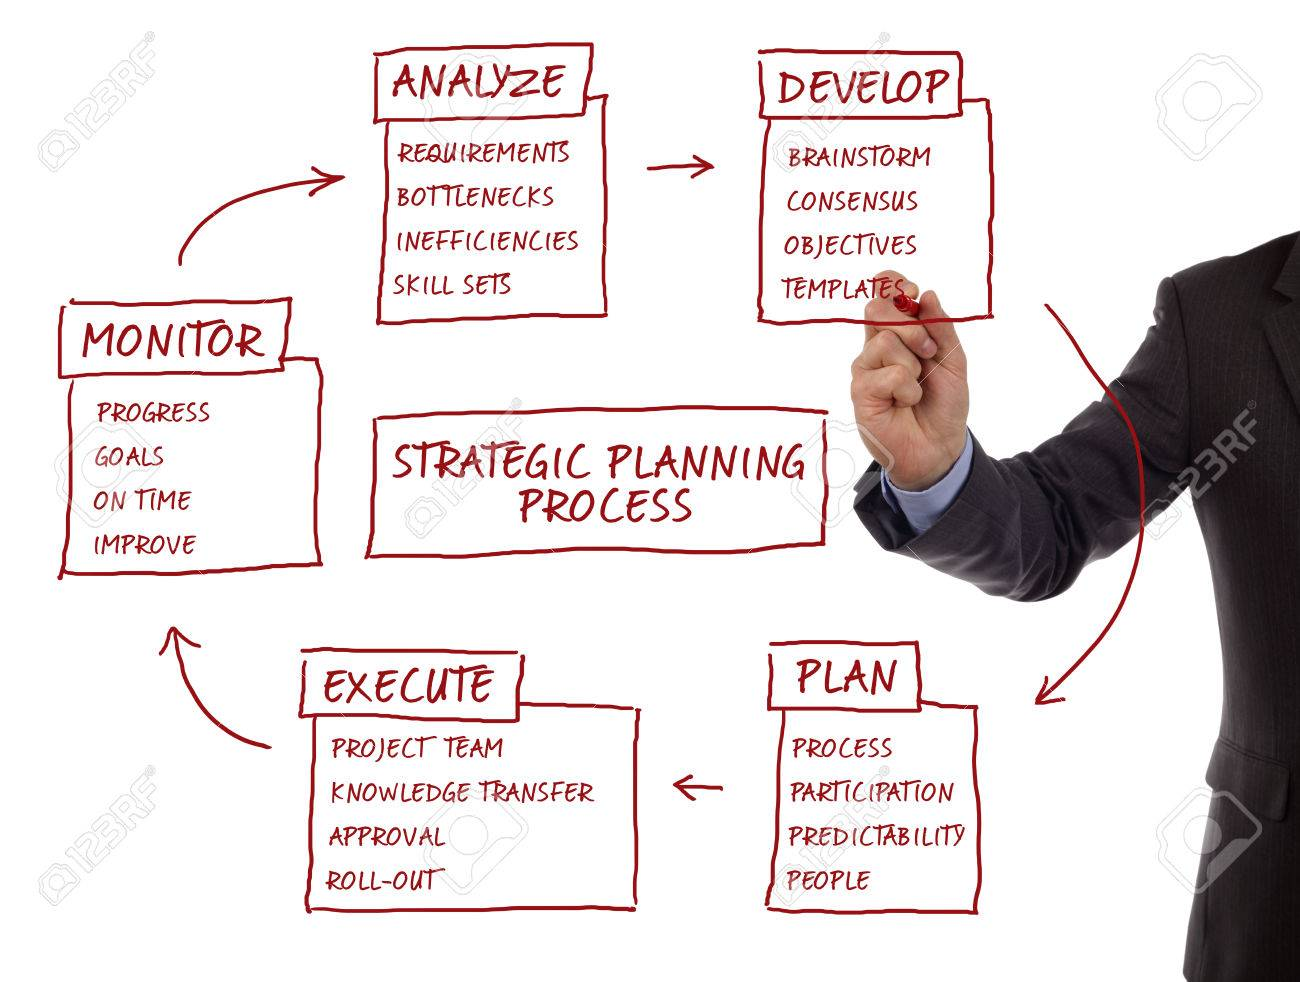 Strategy Management Planning Process Flow Chart Showing Key Business Diagram How To Stock Photo Terms Analyze Develop Plan Execute And Monitor